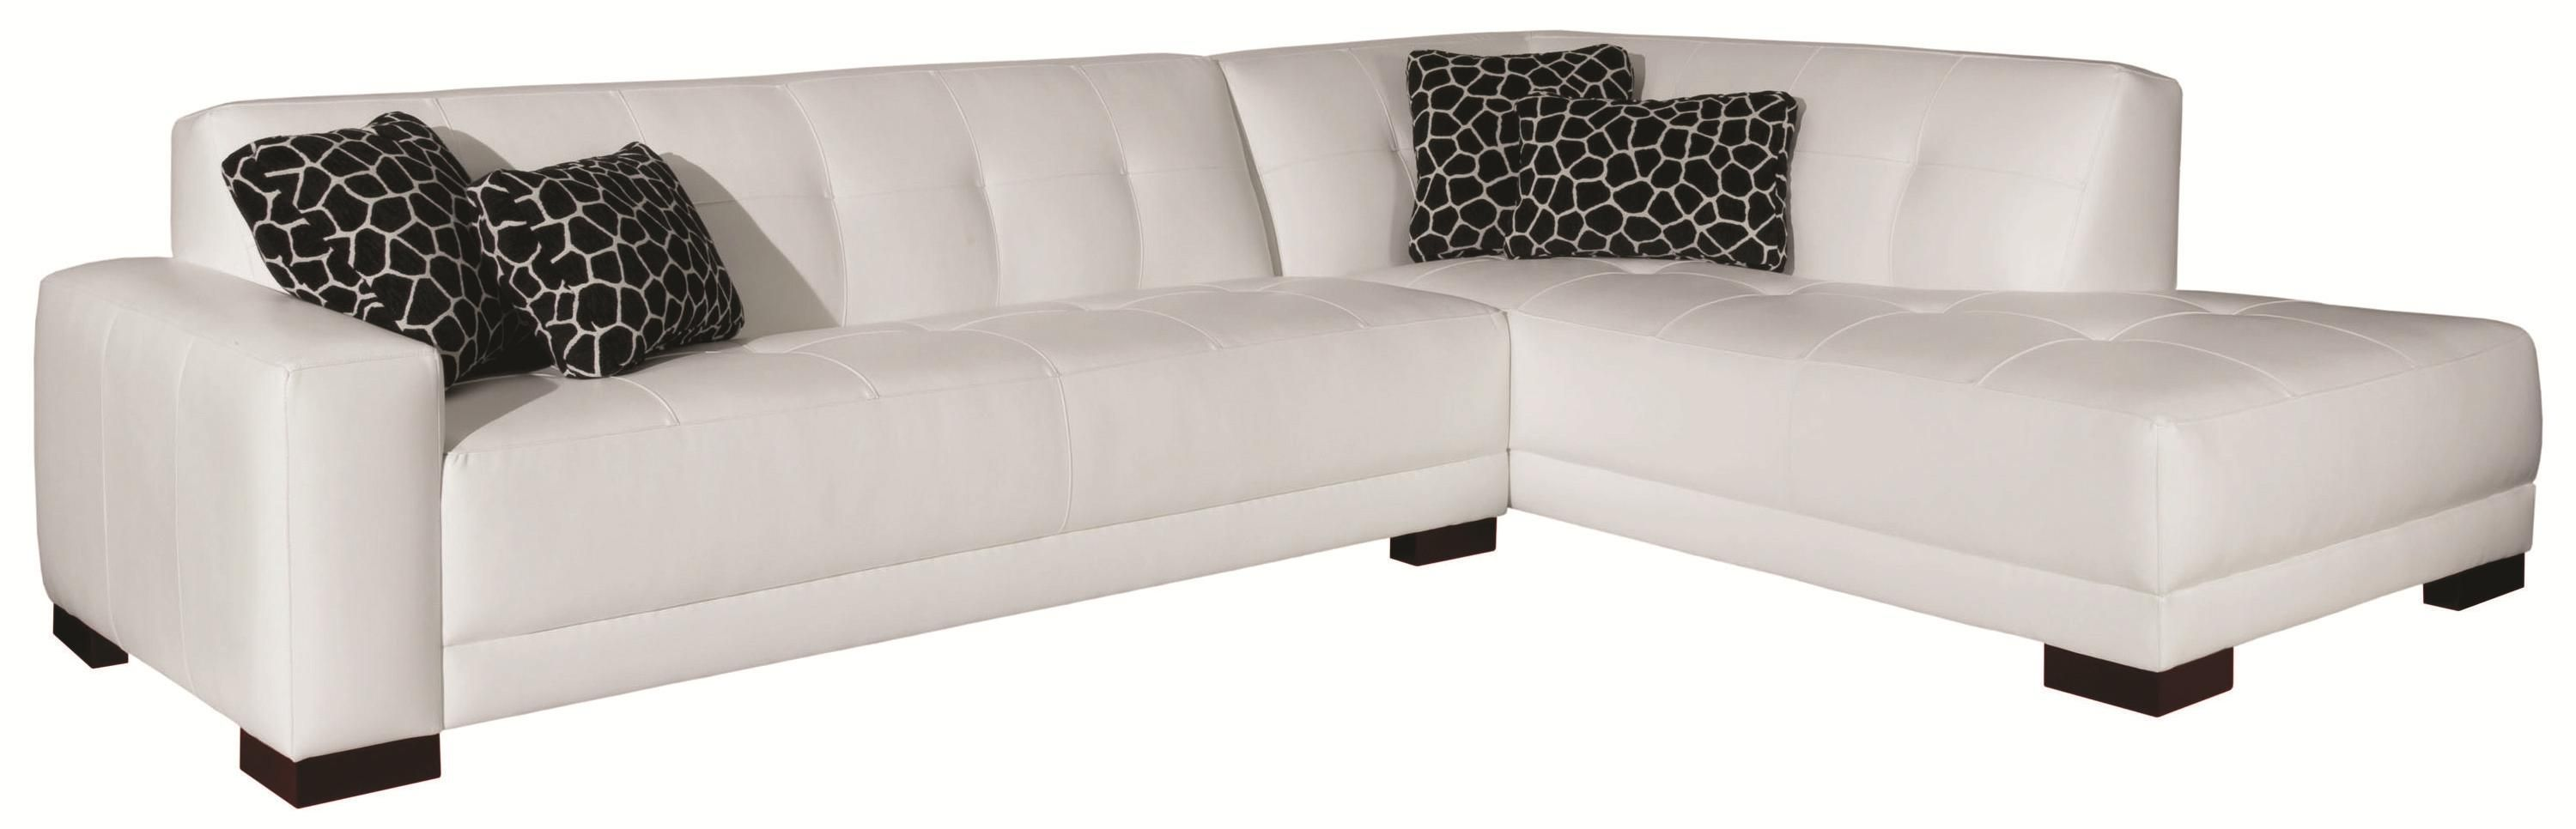 Medici Modern Sectional Sofa by Broyhill Furniture | Asian Inspired ...